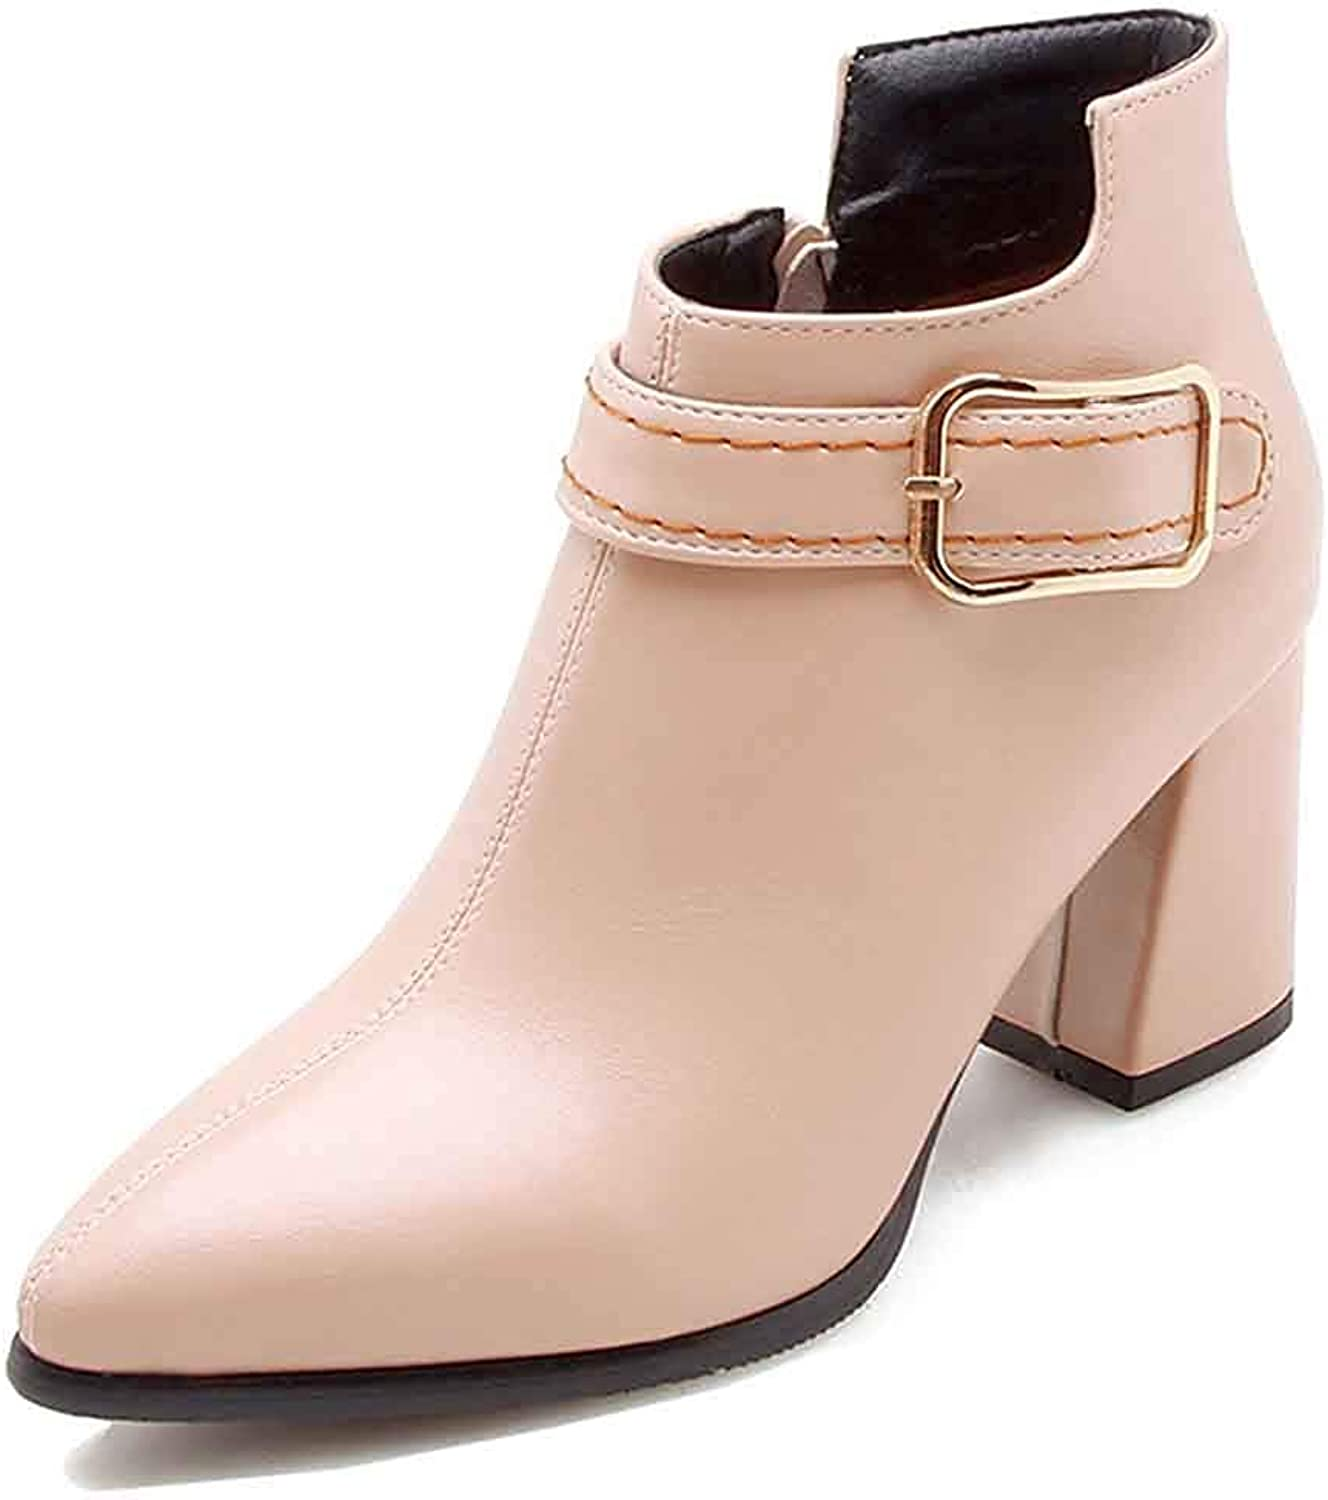 Unm Women's Stylish Pointy Toe Ankle Booties Dressy Buckle Strap Chunky High Heel Short Boots with Zipper